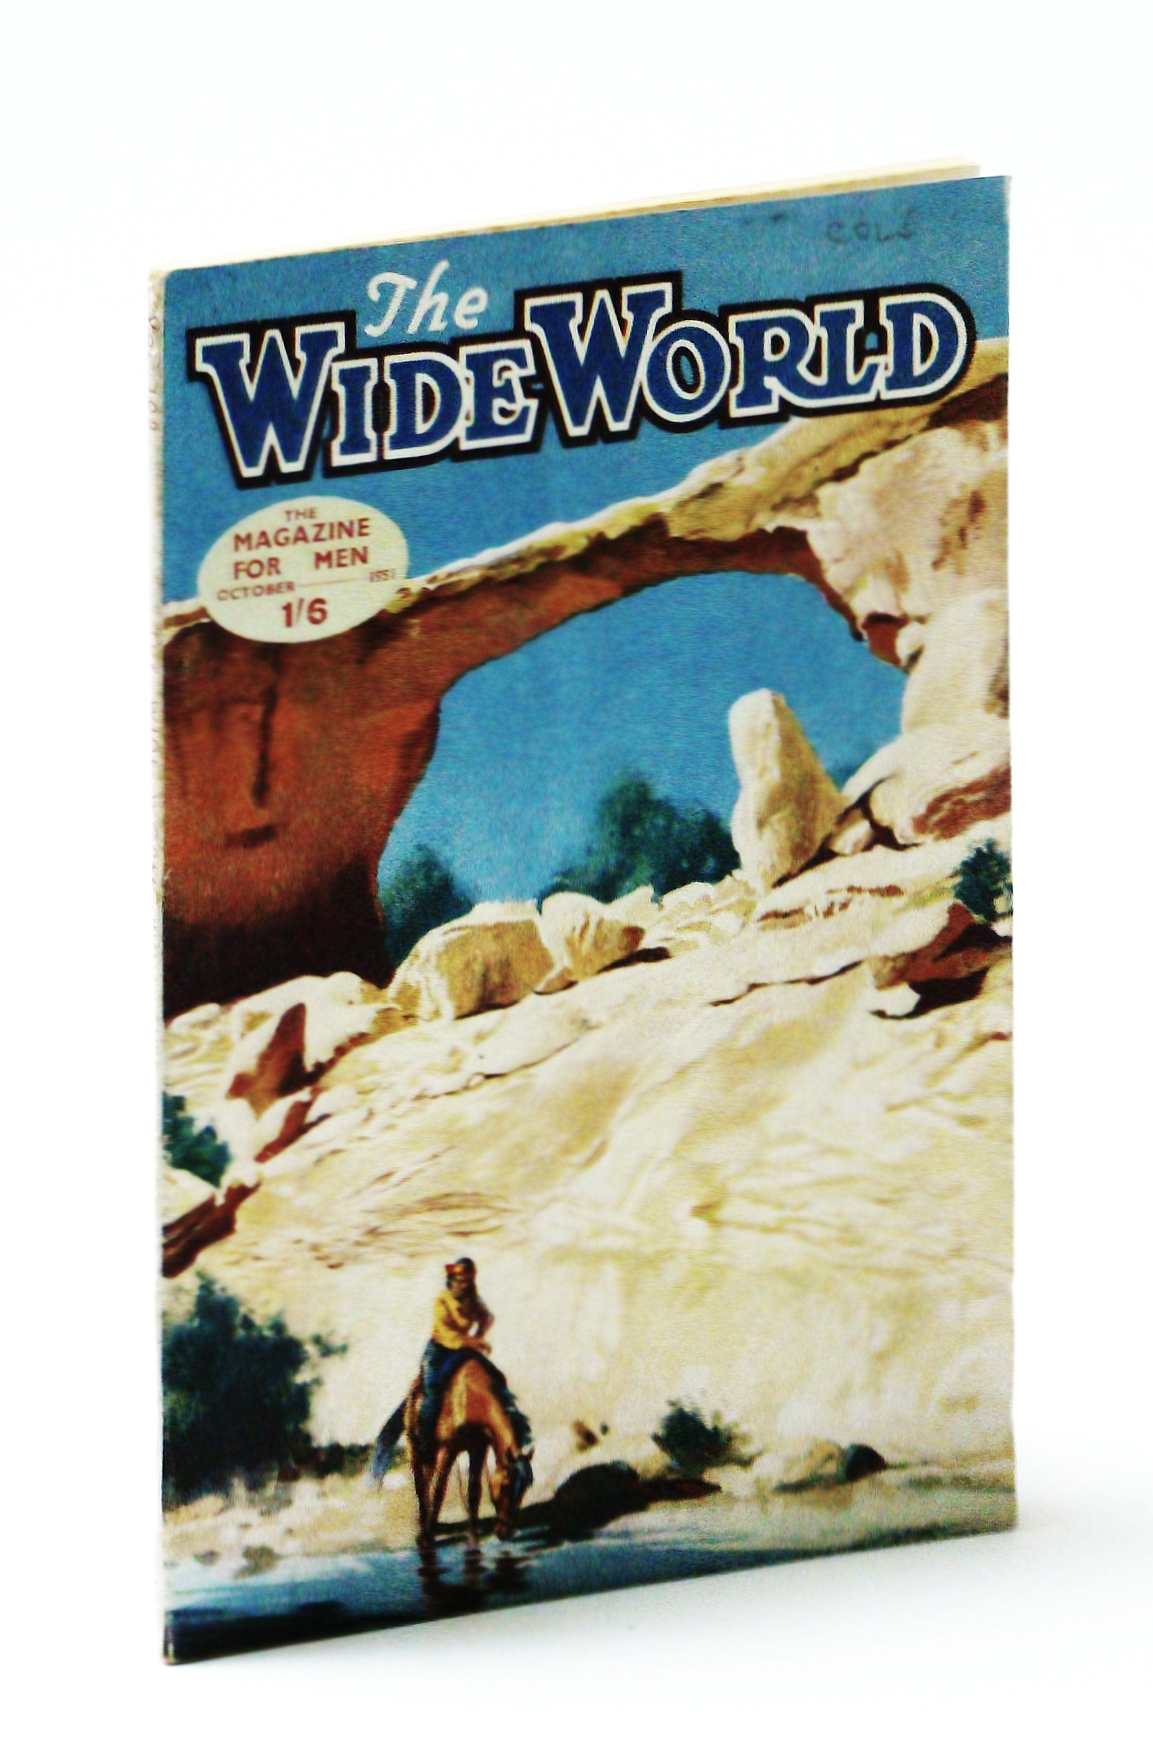 Image for The Wide World, The Magazine For Men, October (Oct) 1951 - The Hunting of Harry Tracy in Washington State in 1902